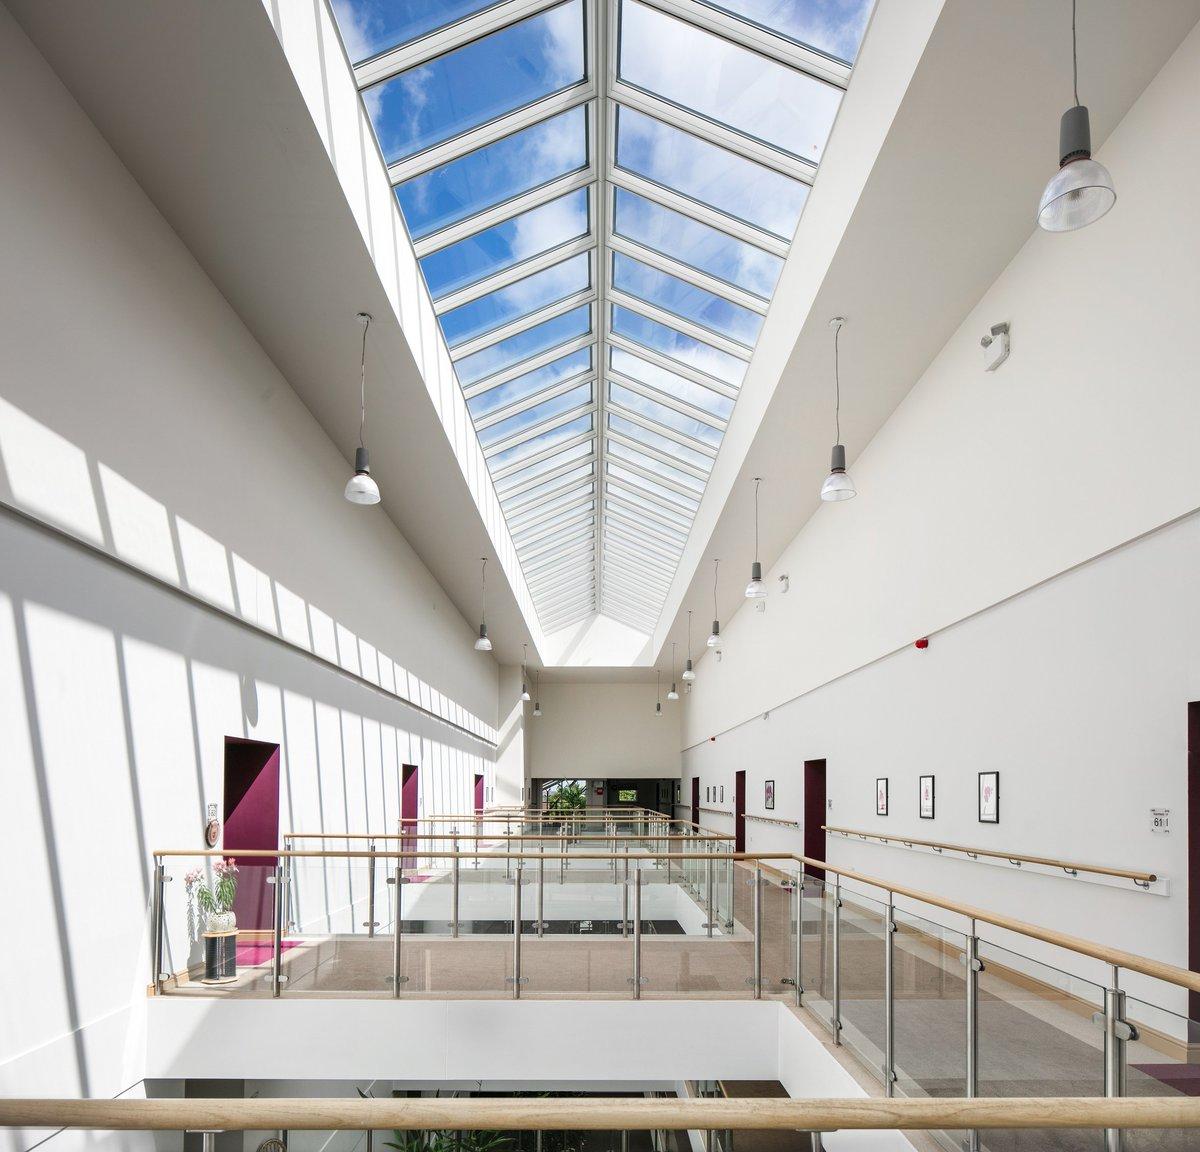 "Velux Reference intérieur velux gbi on twitter: ""high levels of natural light and ventilation"